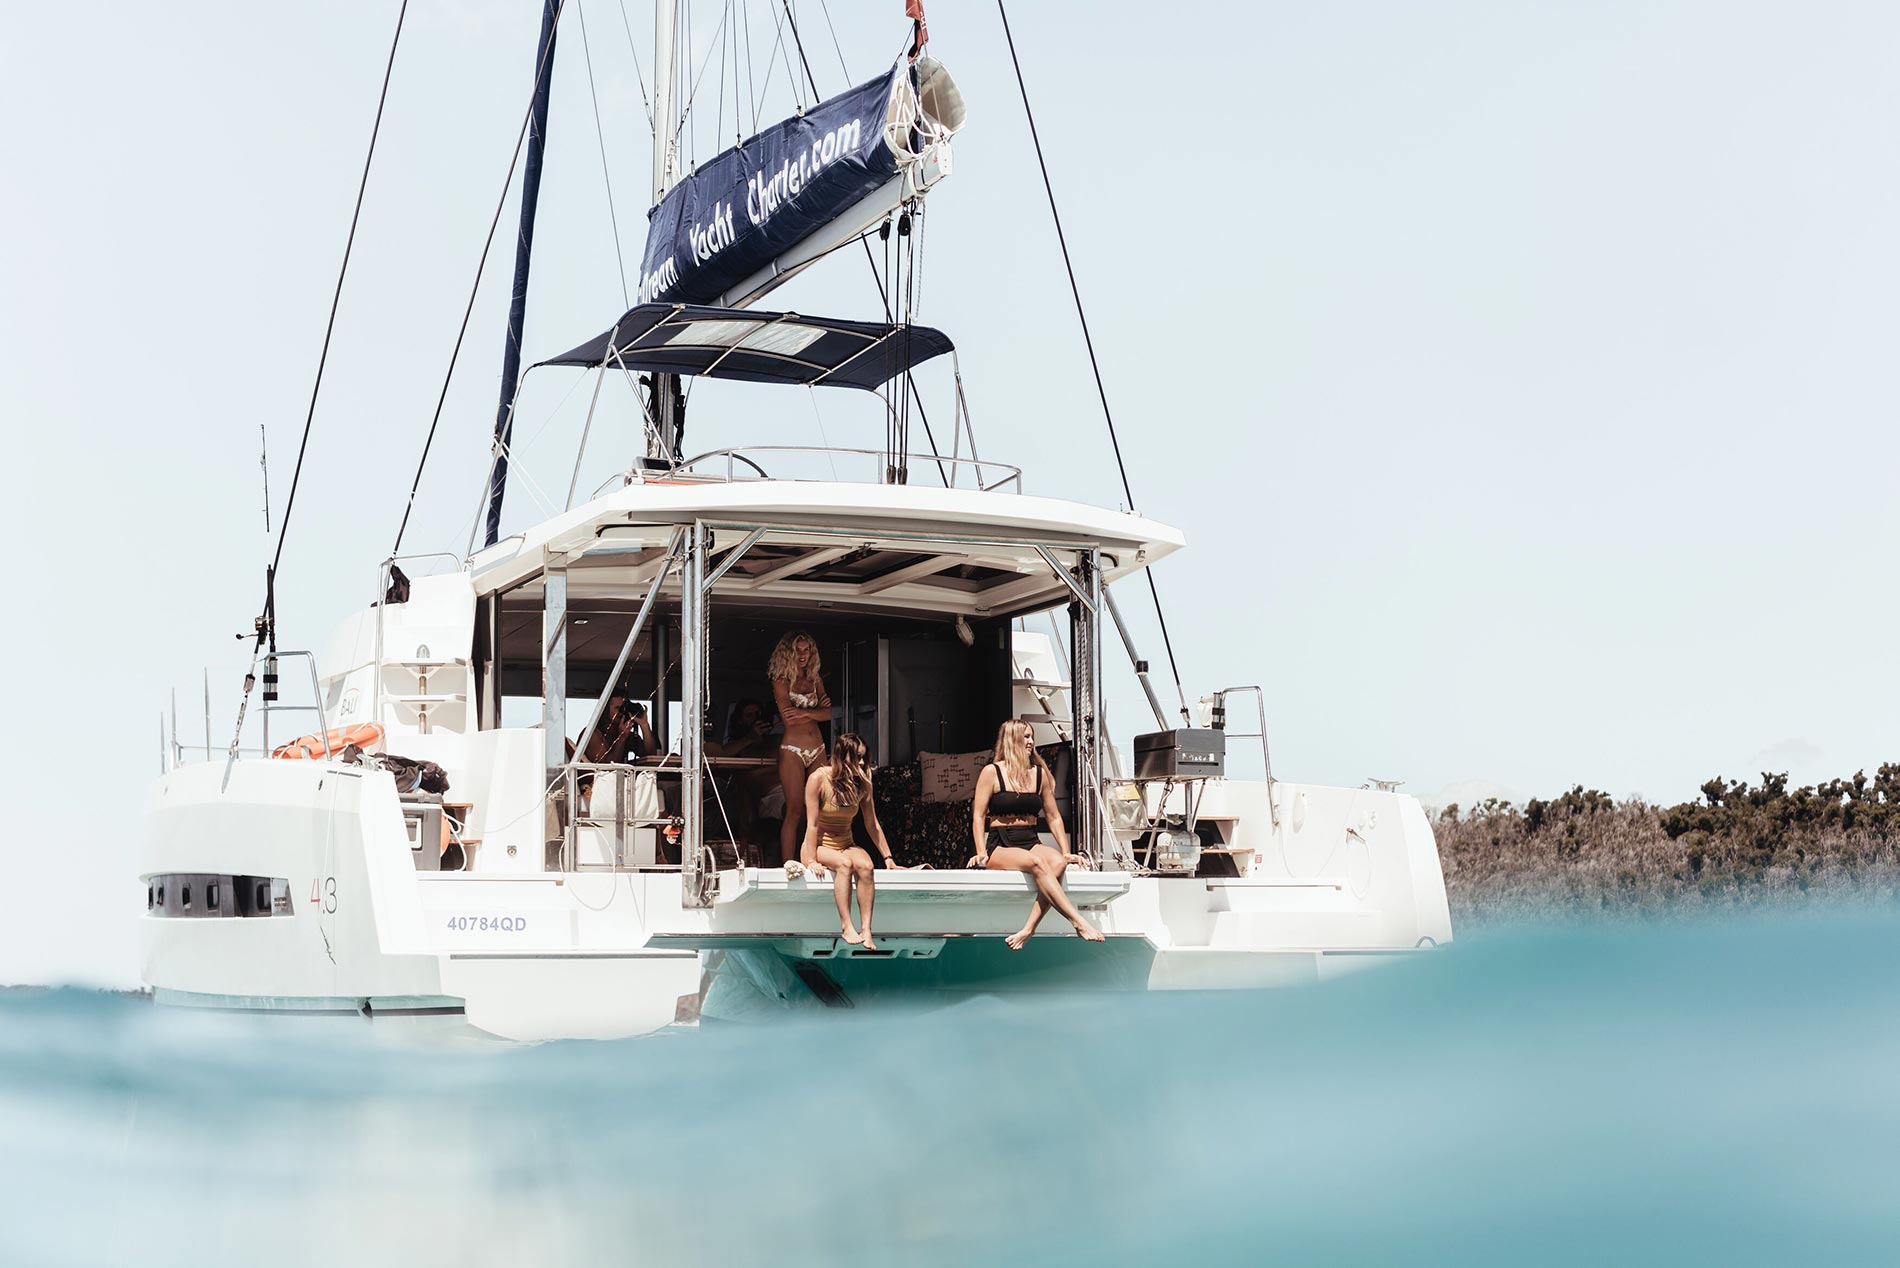 Luxury Boat Hire Whitsundays - Queensland Yacht Charters